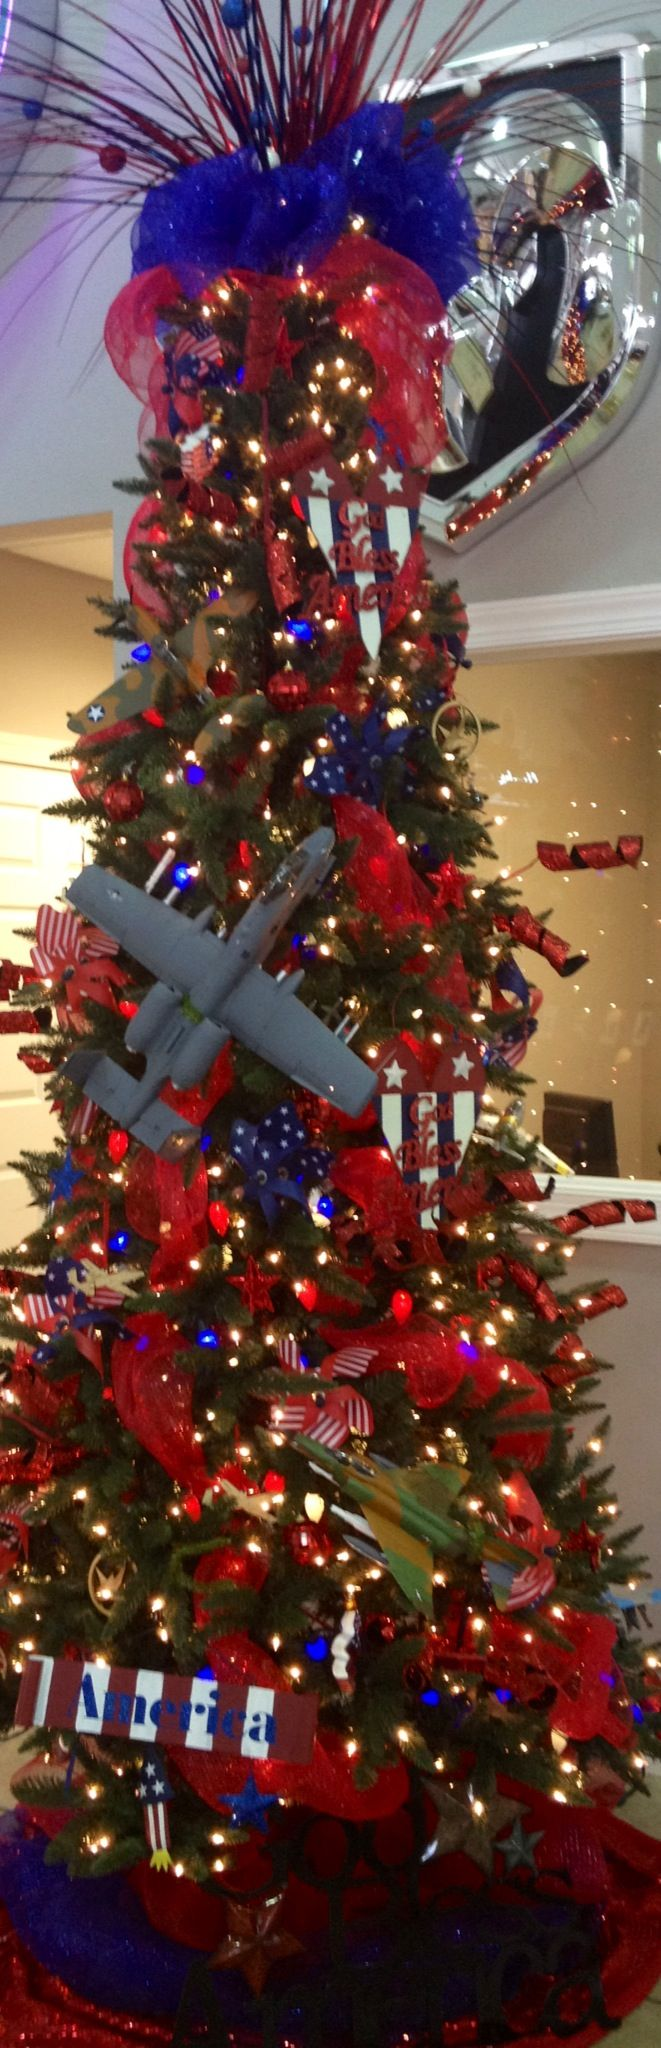 15 best Military Christmas tree images on Pinterest | Merry ...